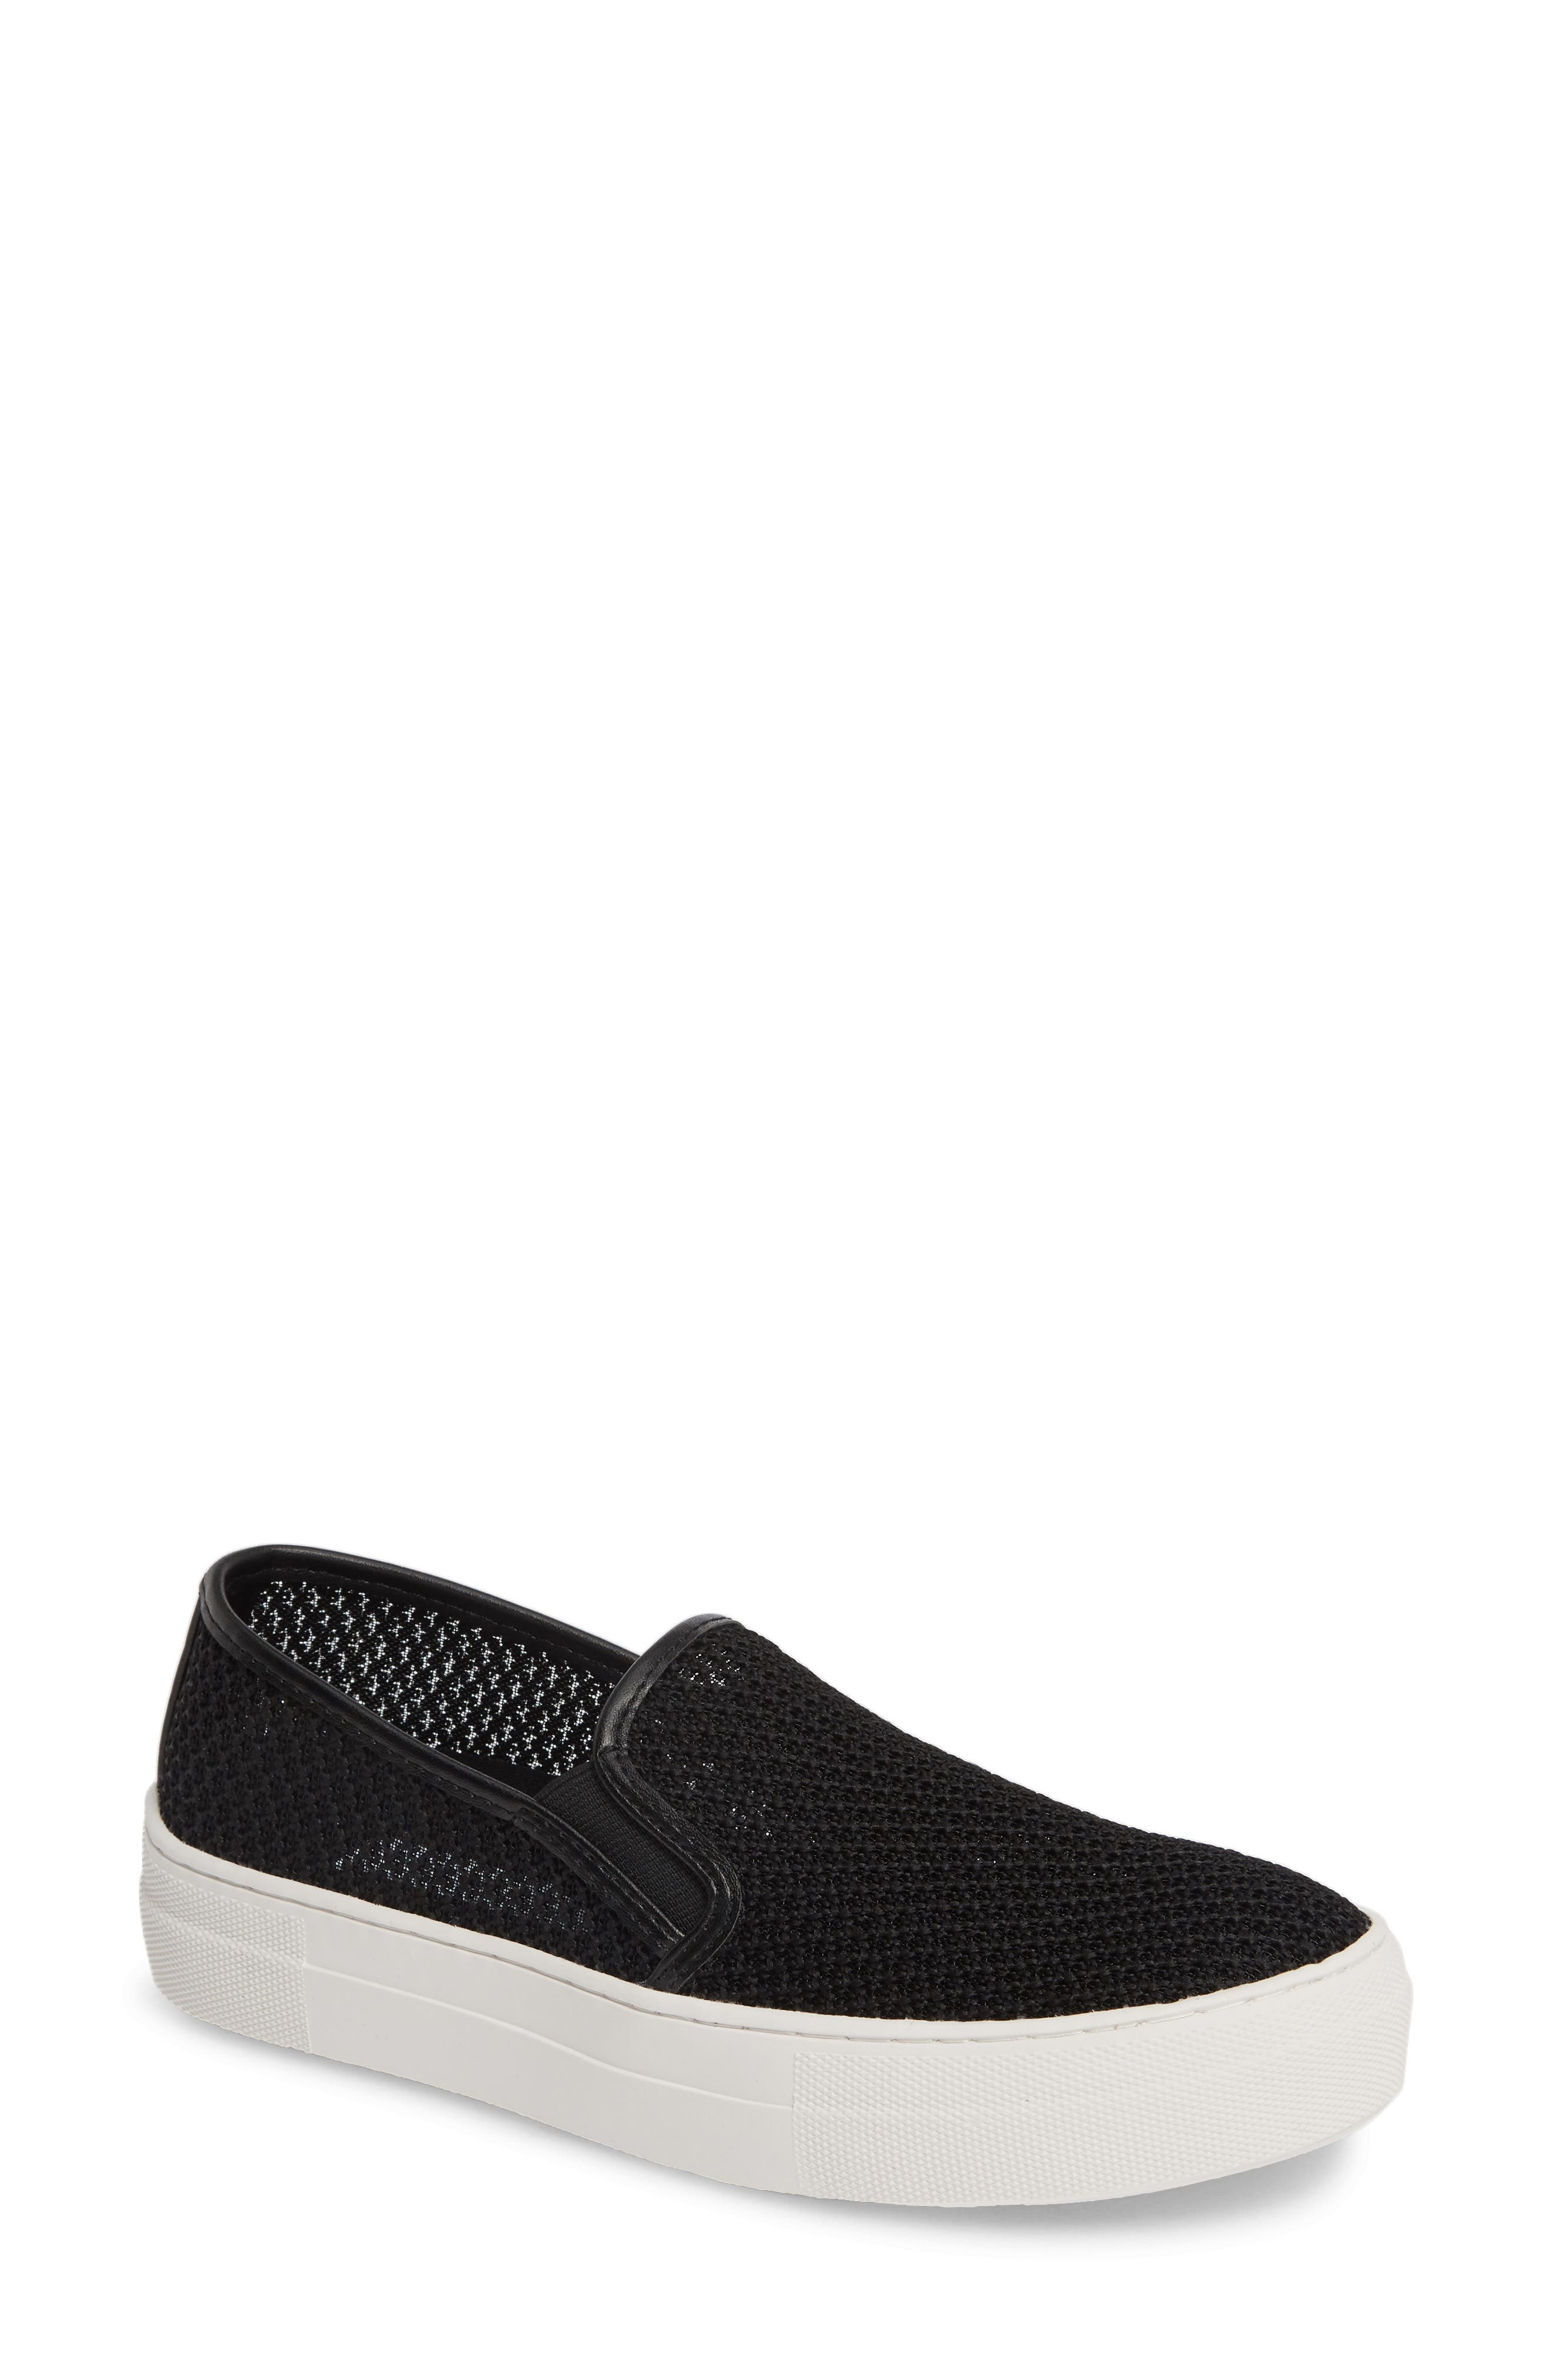 Gills-M Mesh Slip-On Sneaker, Main, color, BLACK